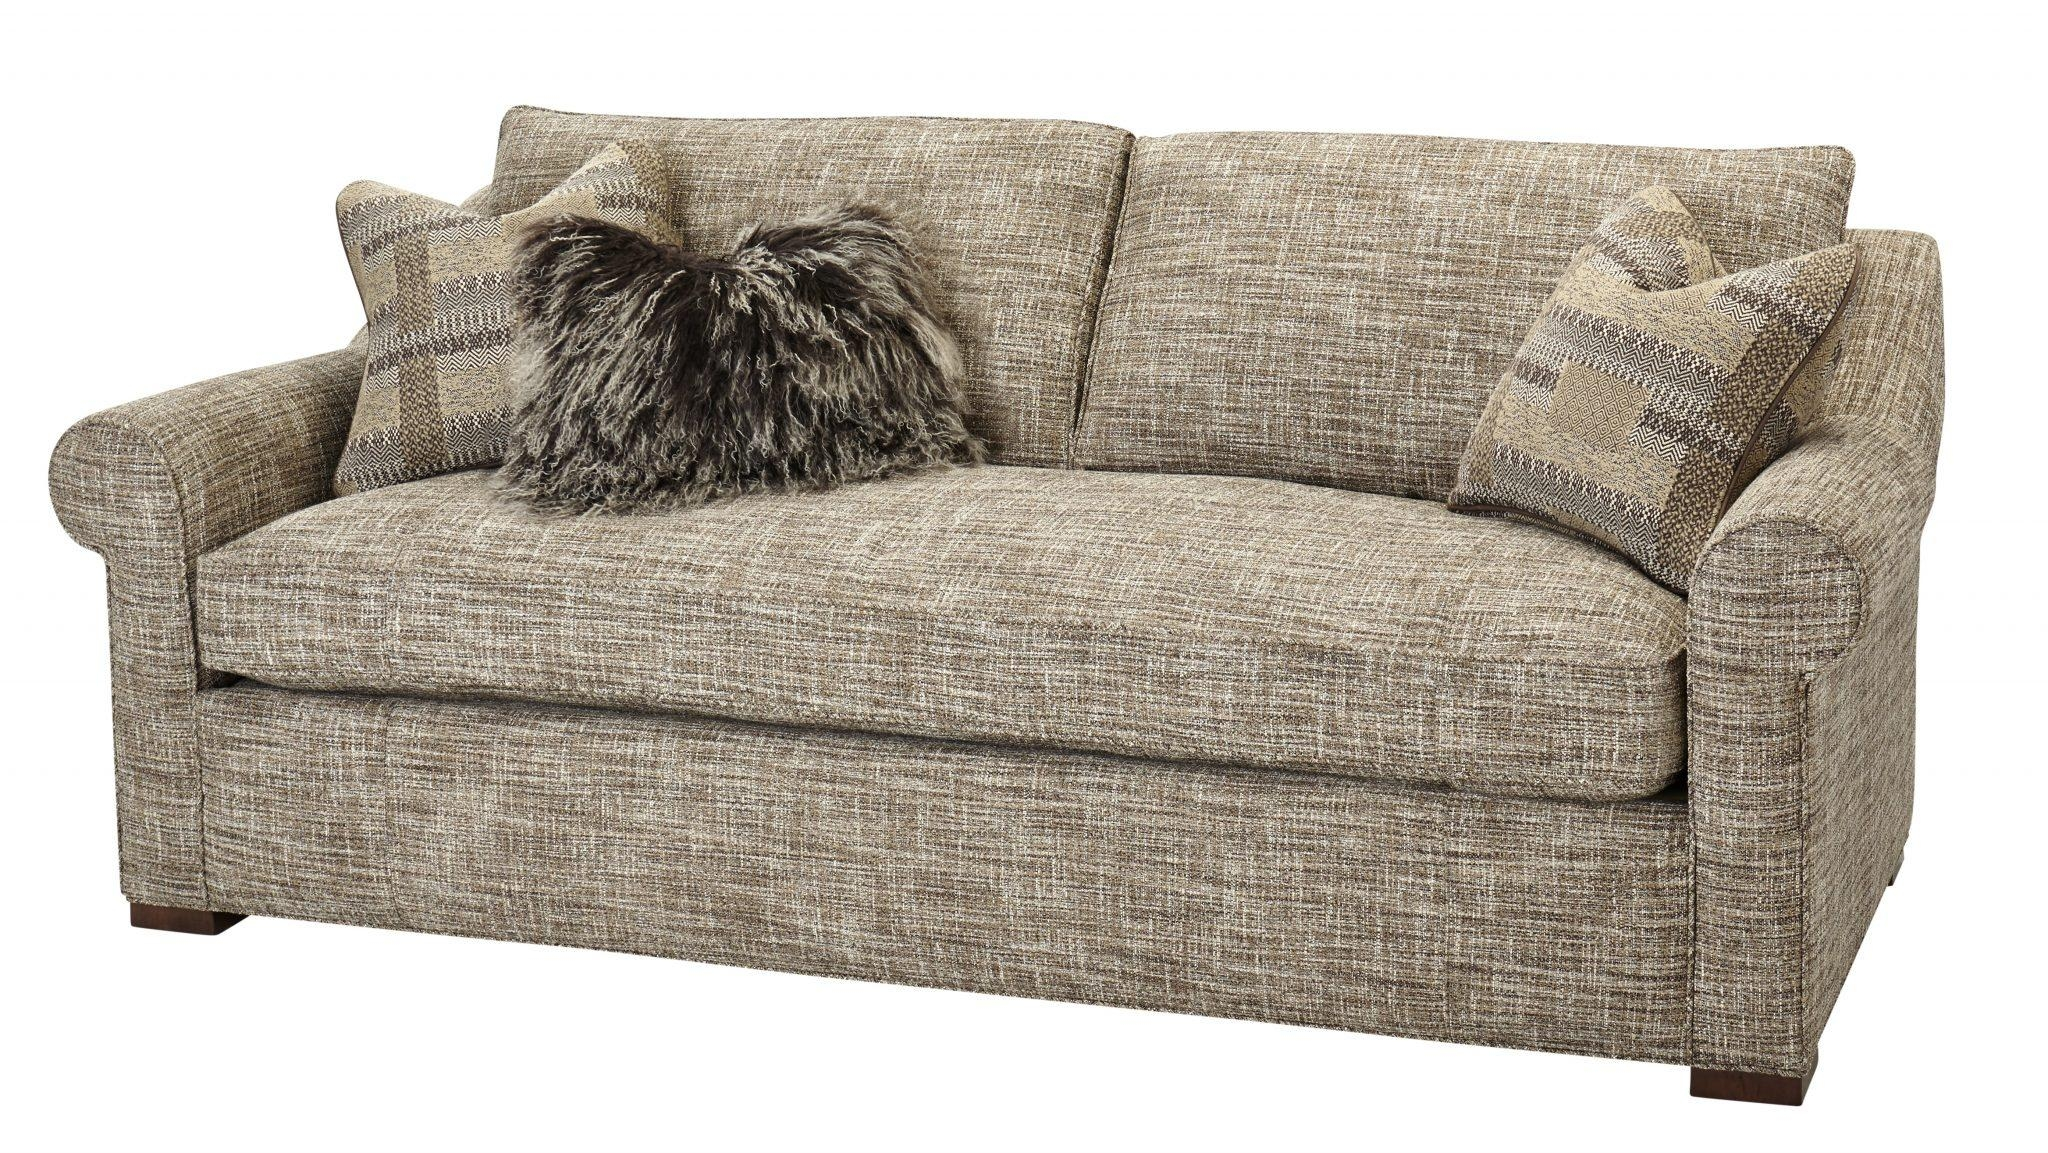 One Cushion Sofas – Massoud Furniture In One Cushion Sofas (View 4 of 20)